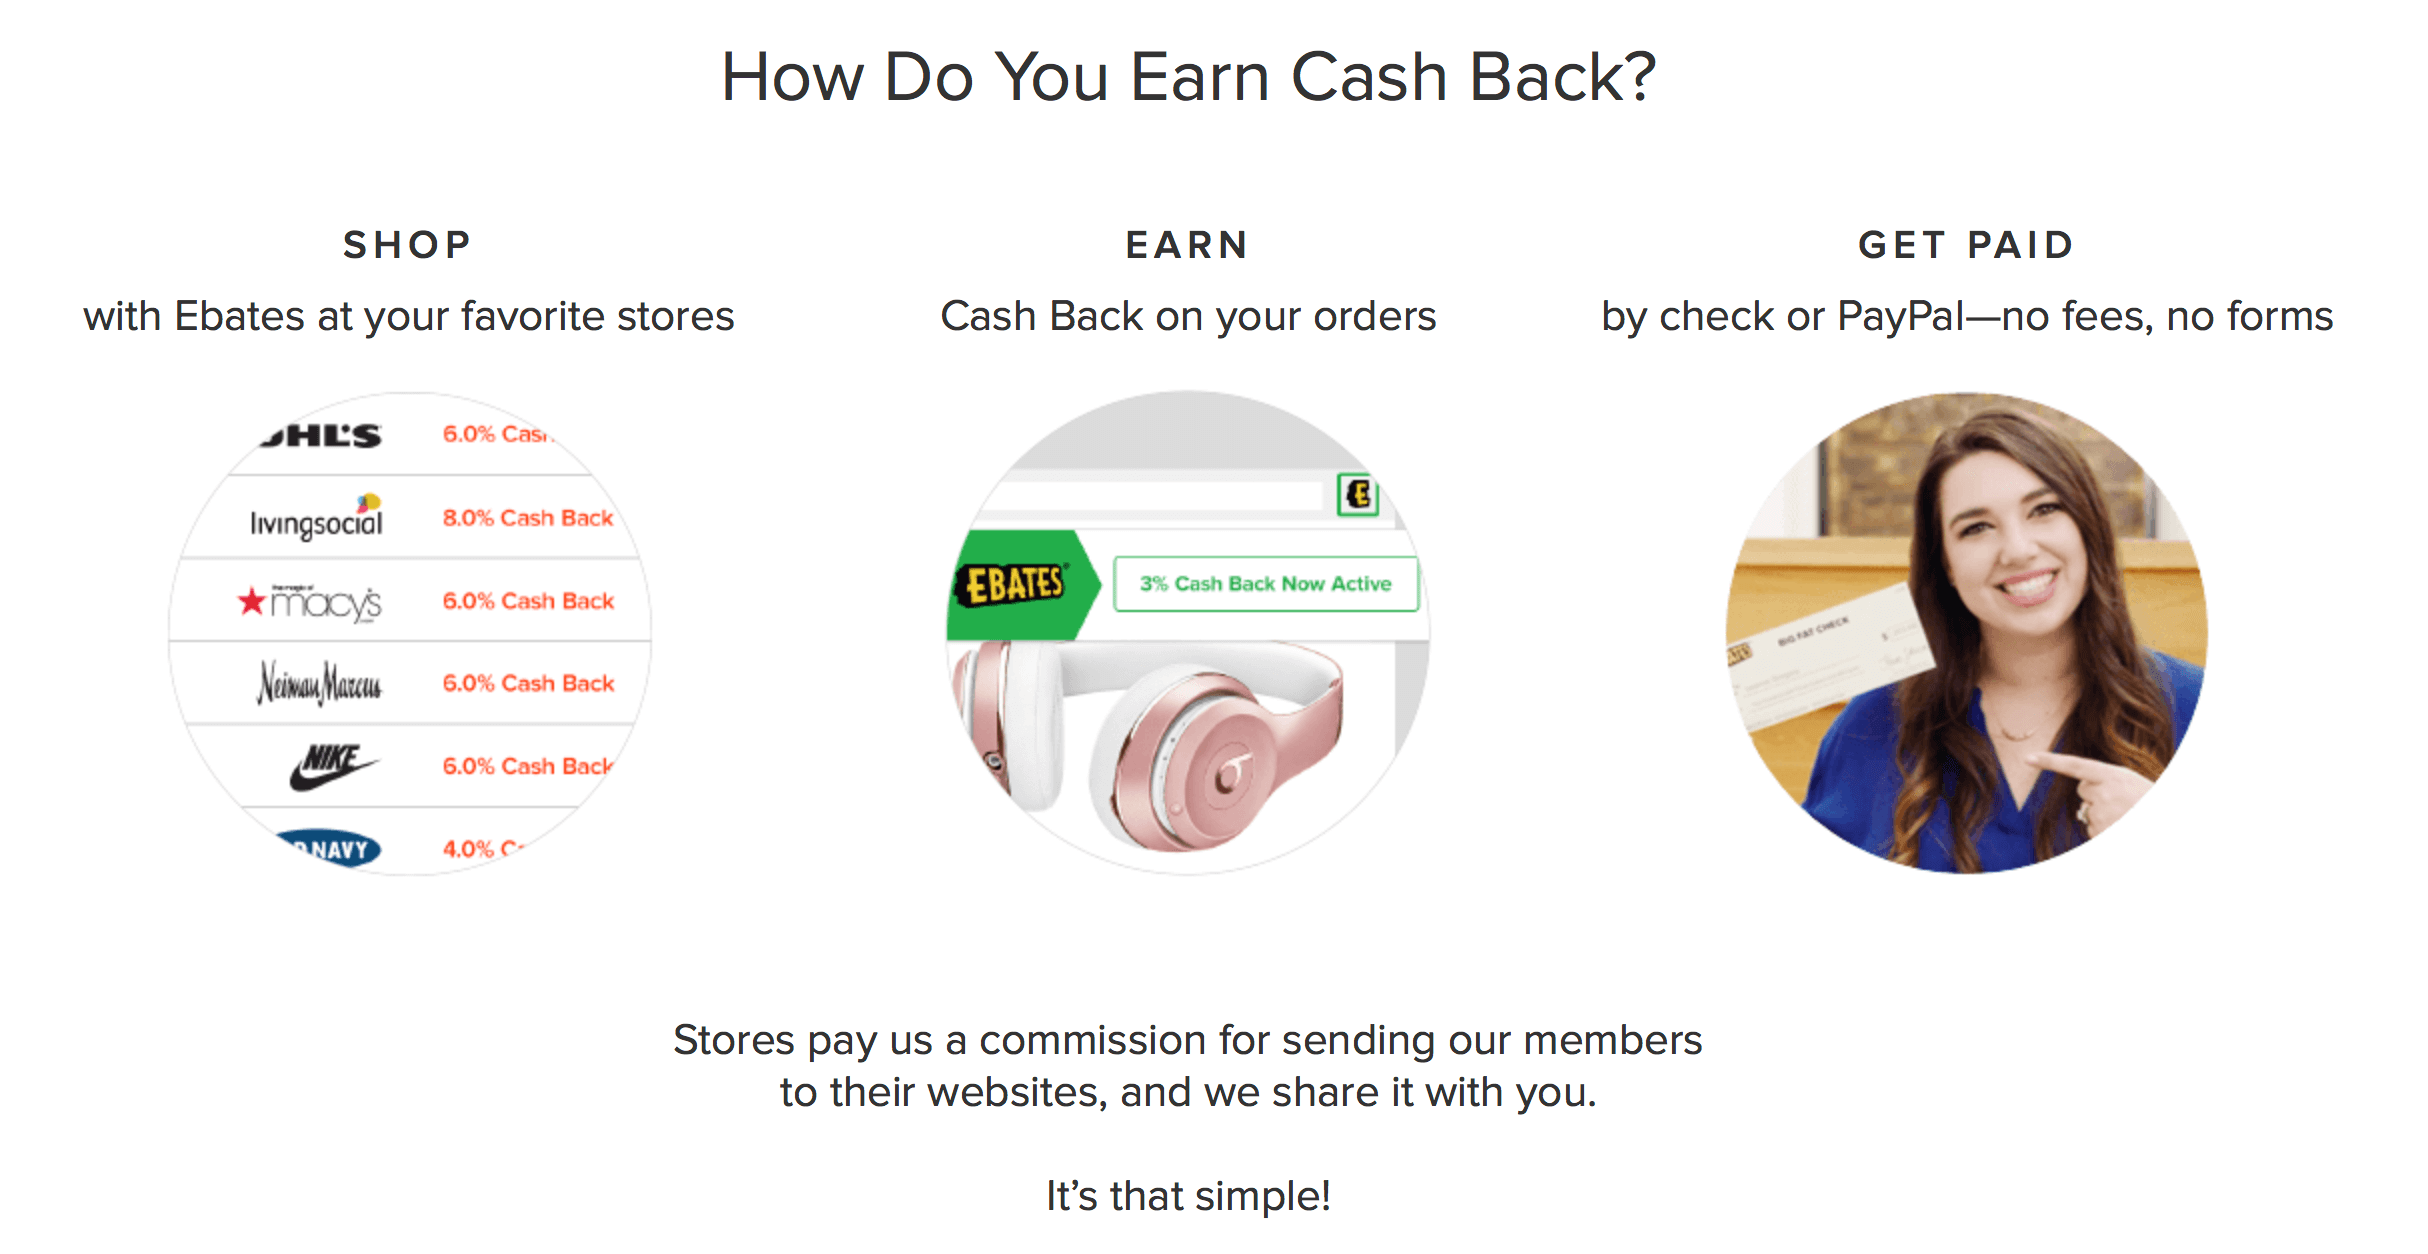 How does Ebates work?